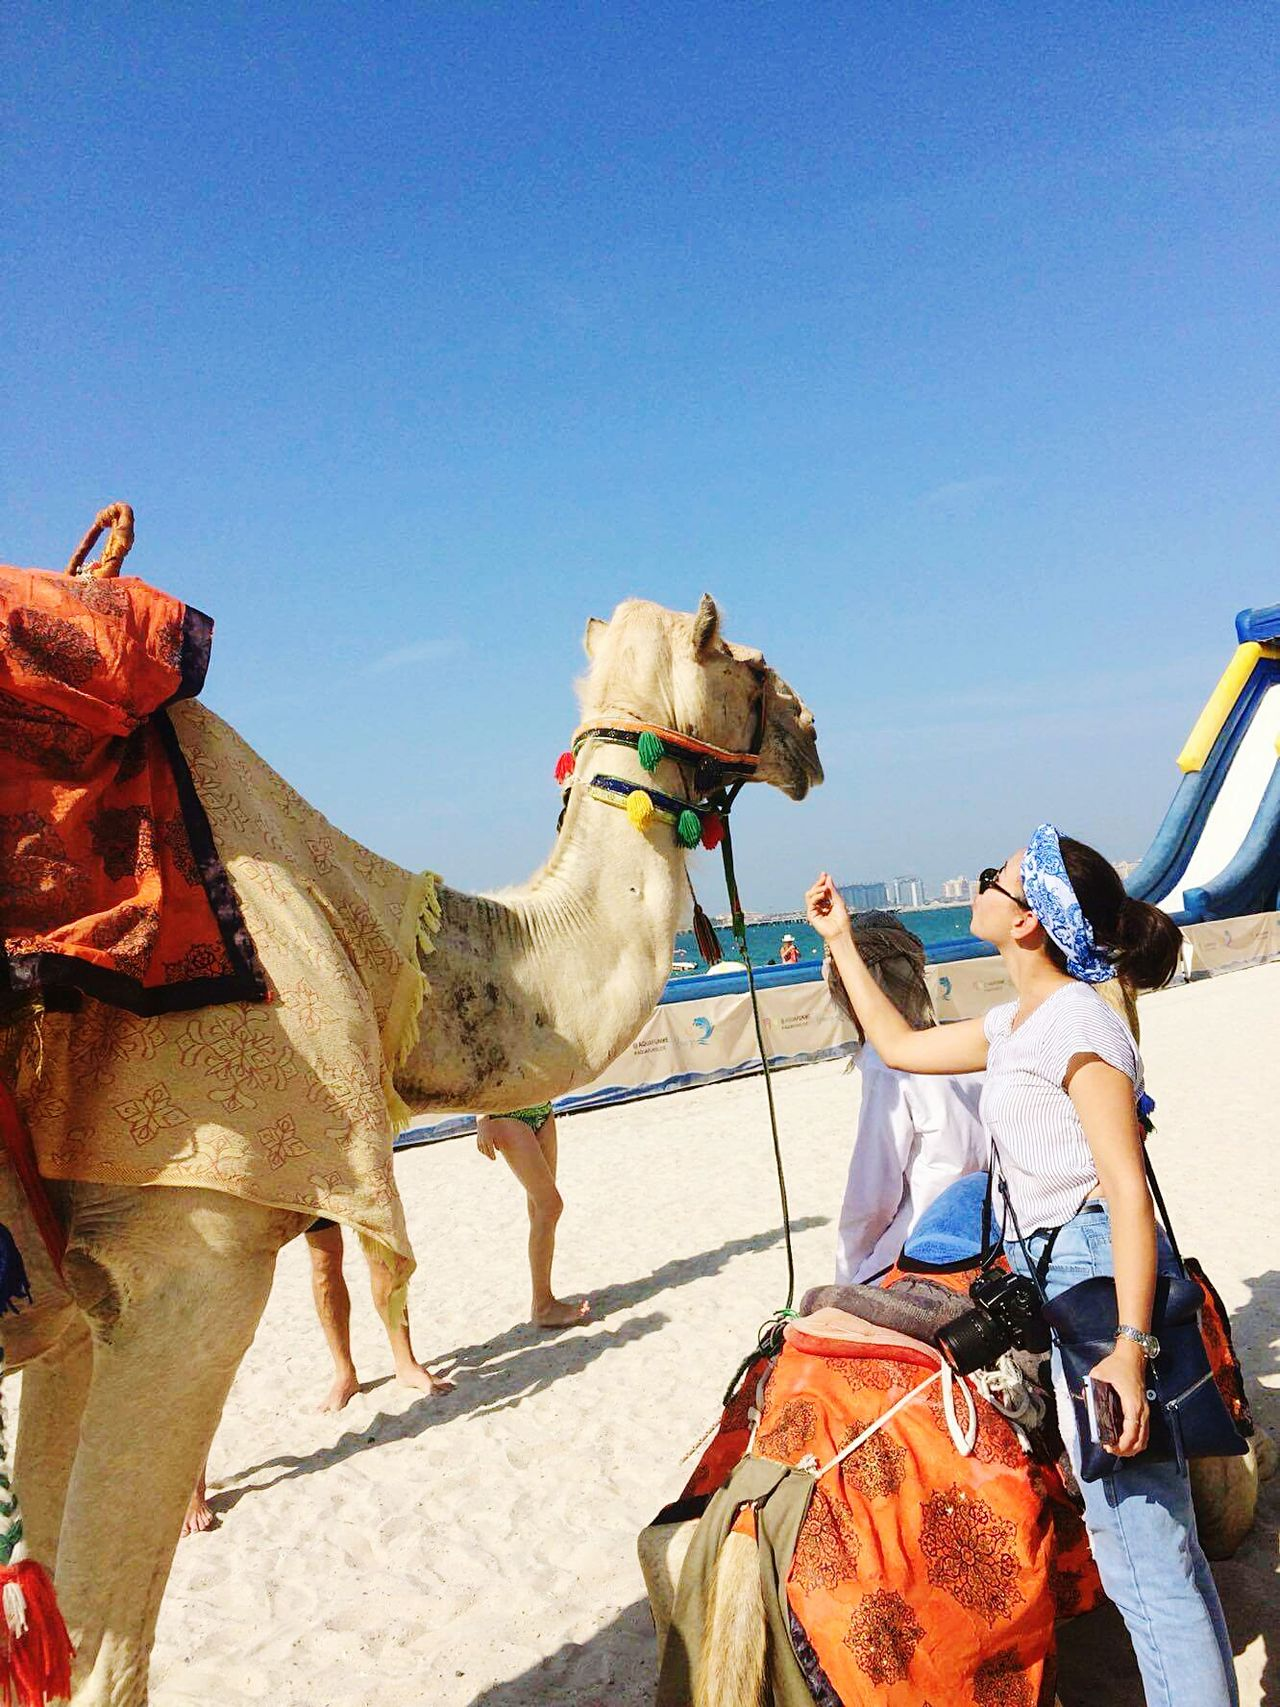 One Animal Camel Travel Adults Only Working Animal Only Women One Woman Only Sky Hanging Out Relaxing Nature Lonely Taking Photos Fantastic Exhibition Have A Nice Day♥ Holiday Adventure Beach Day Beautiful Surroundings Hello World That's Me Background Day Out Enjoying The Sun Beach